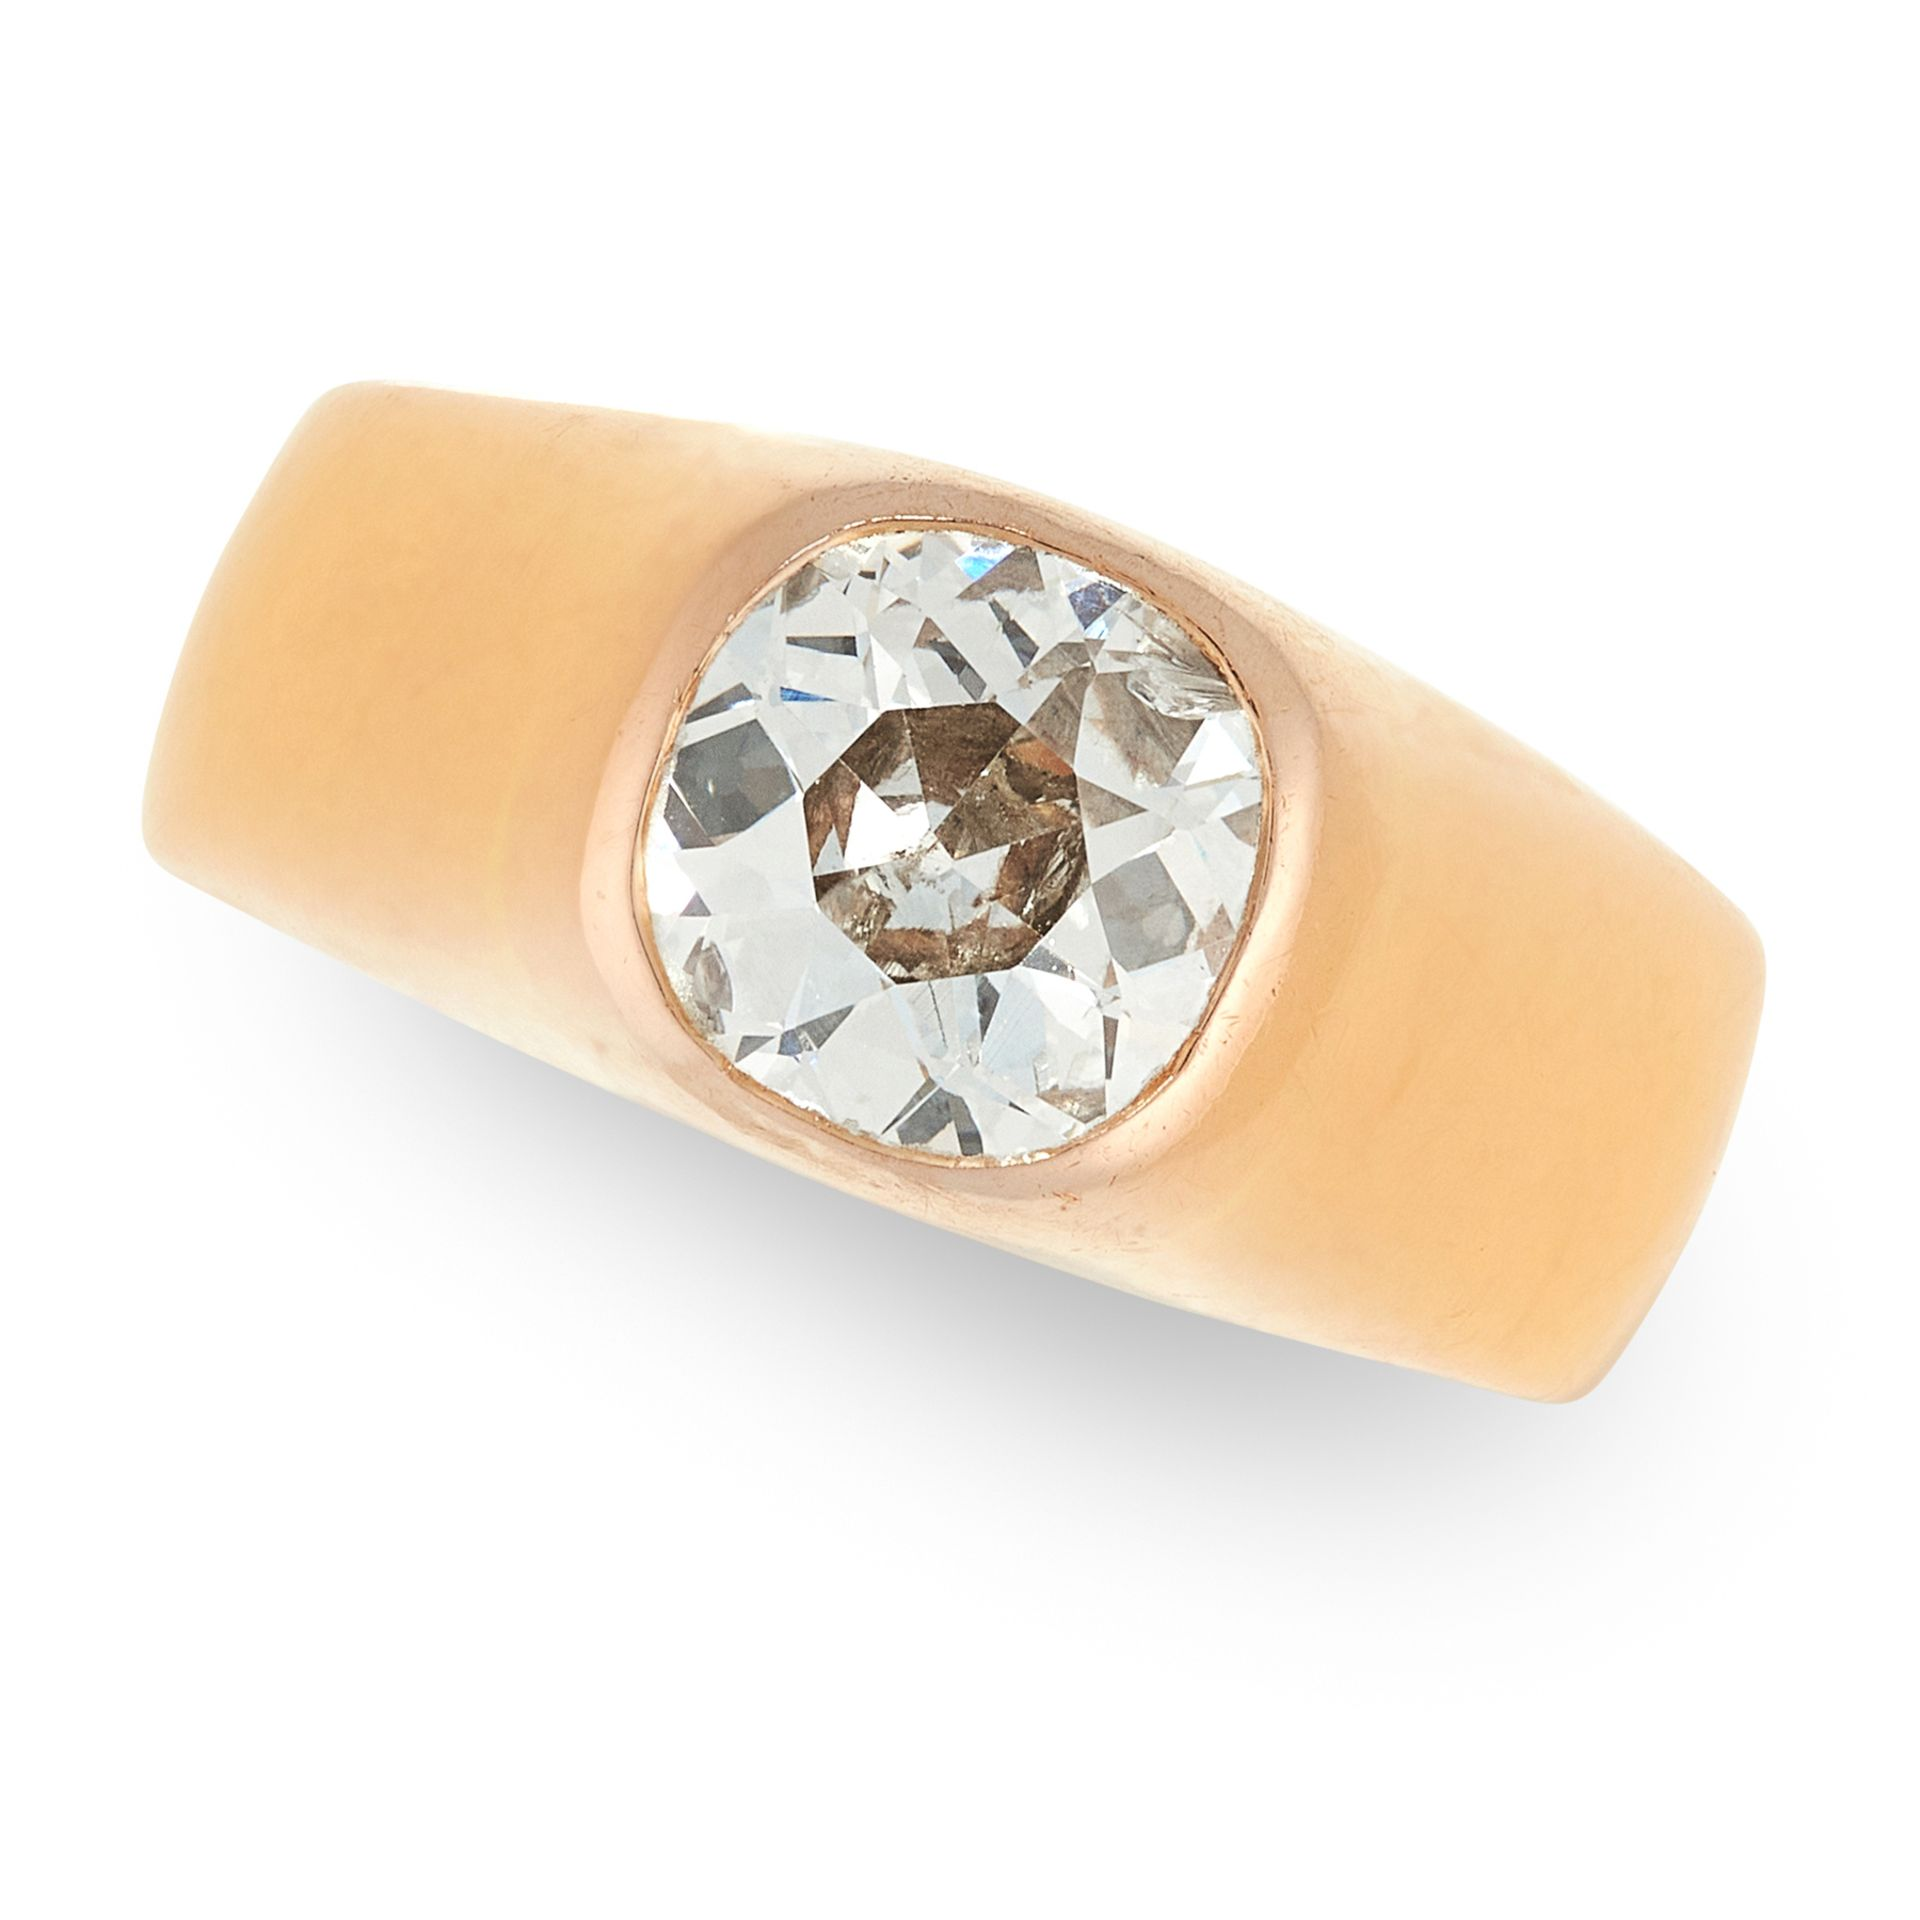 A DIAMOND GYPSY RING in 18ct yellow gold, the plain band set with an old cut diamond of 1.45 carats,